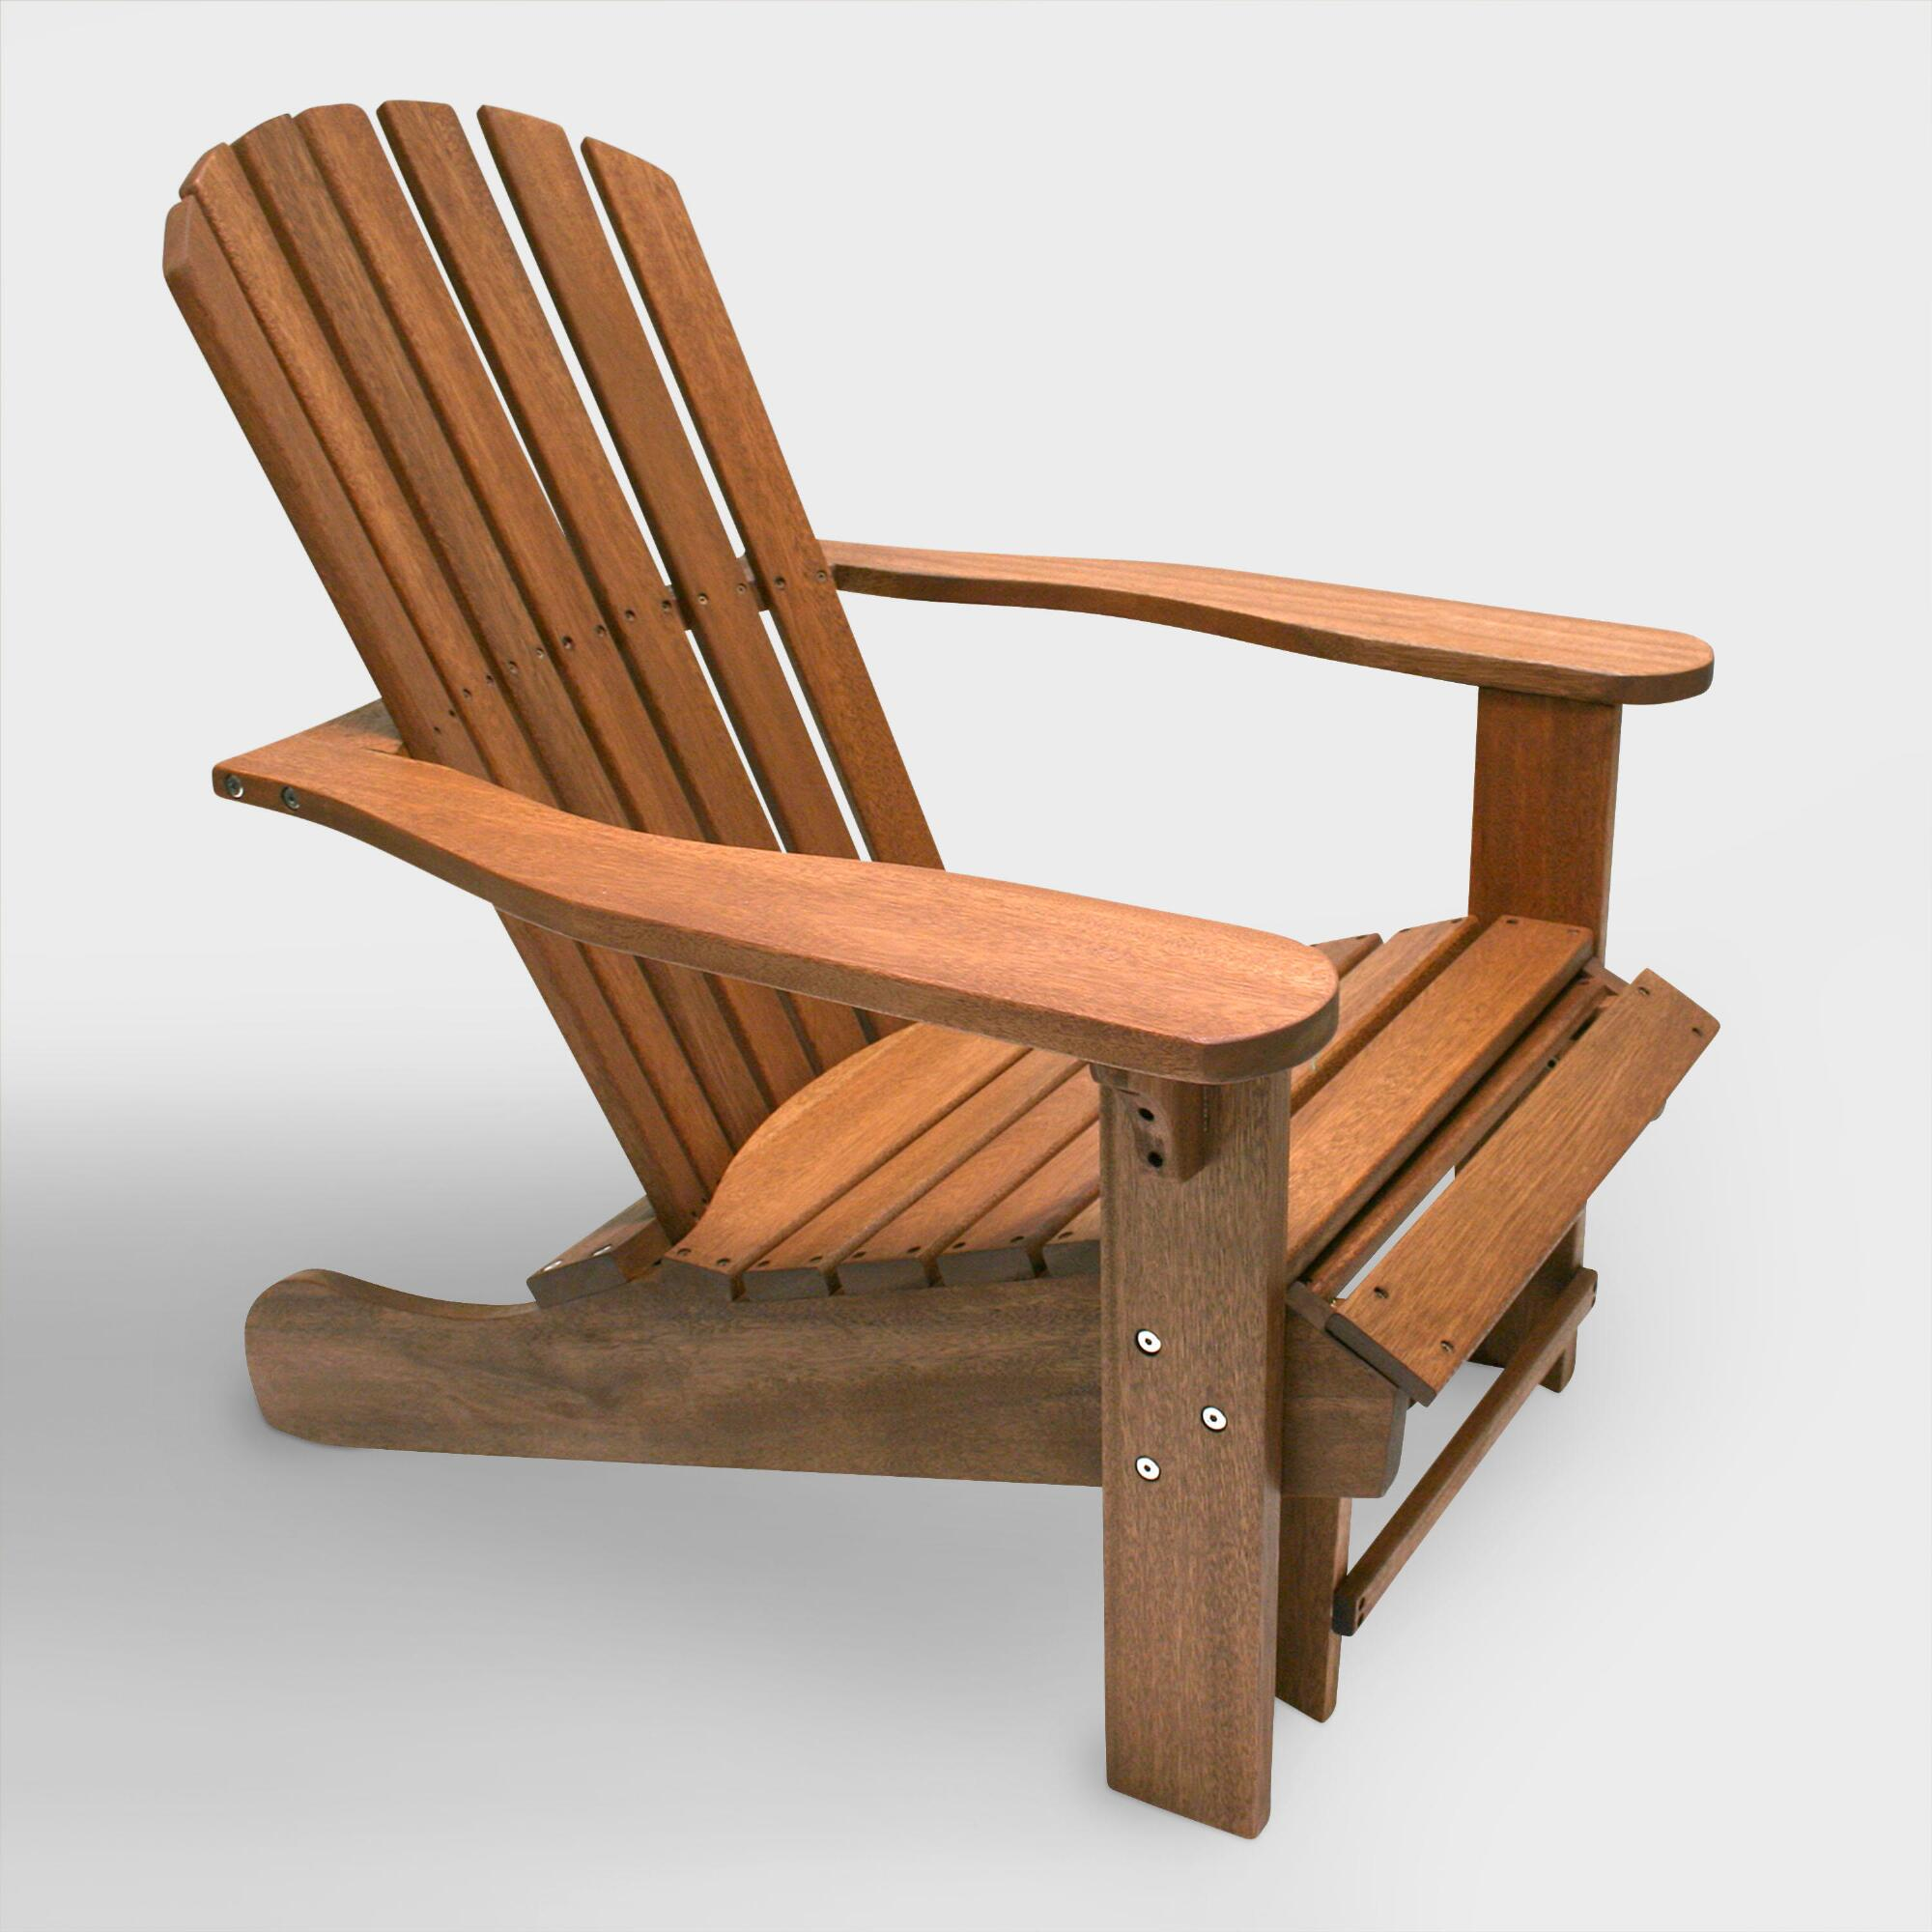 The essential guide to adirondack chairs one kings lane - The Essential Guide To Adirondack Chairs One Kings Lane 2